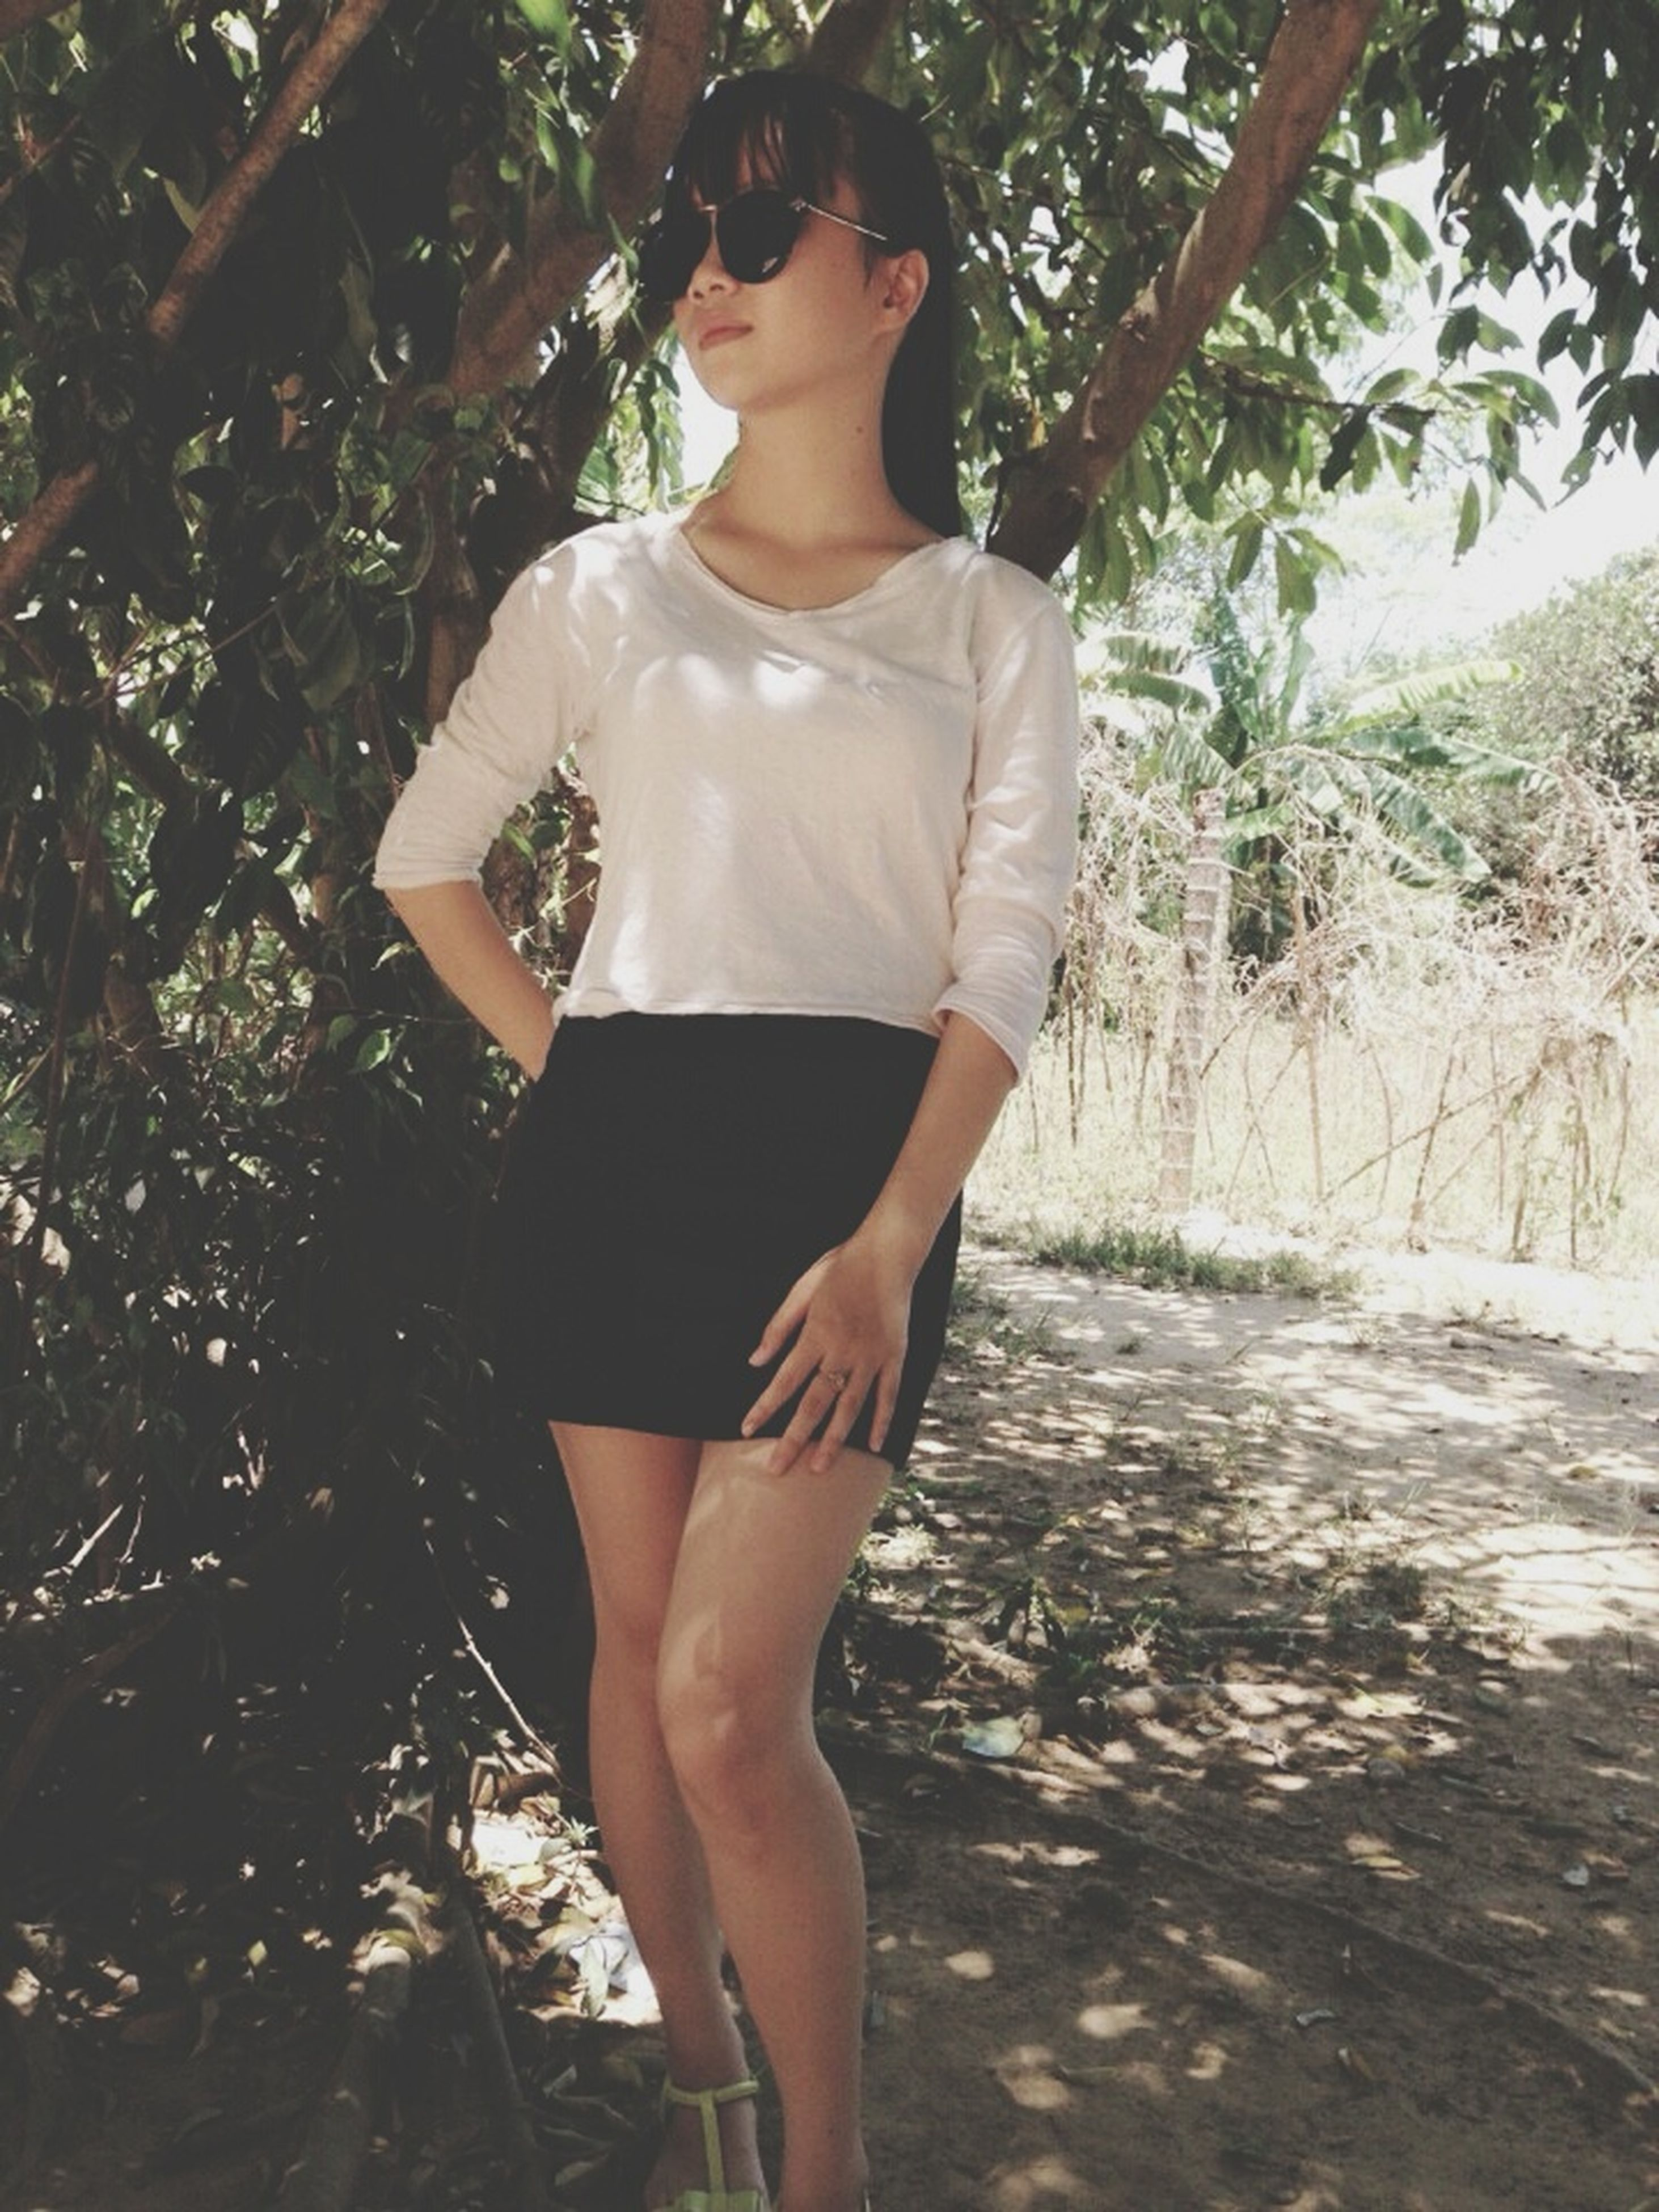 tree, young adult, lifestyles, young women, leisure activity, standing, front view, person, casual clothing, sunlight, full length, sensuality, day, dress, tree trunk, outdoors